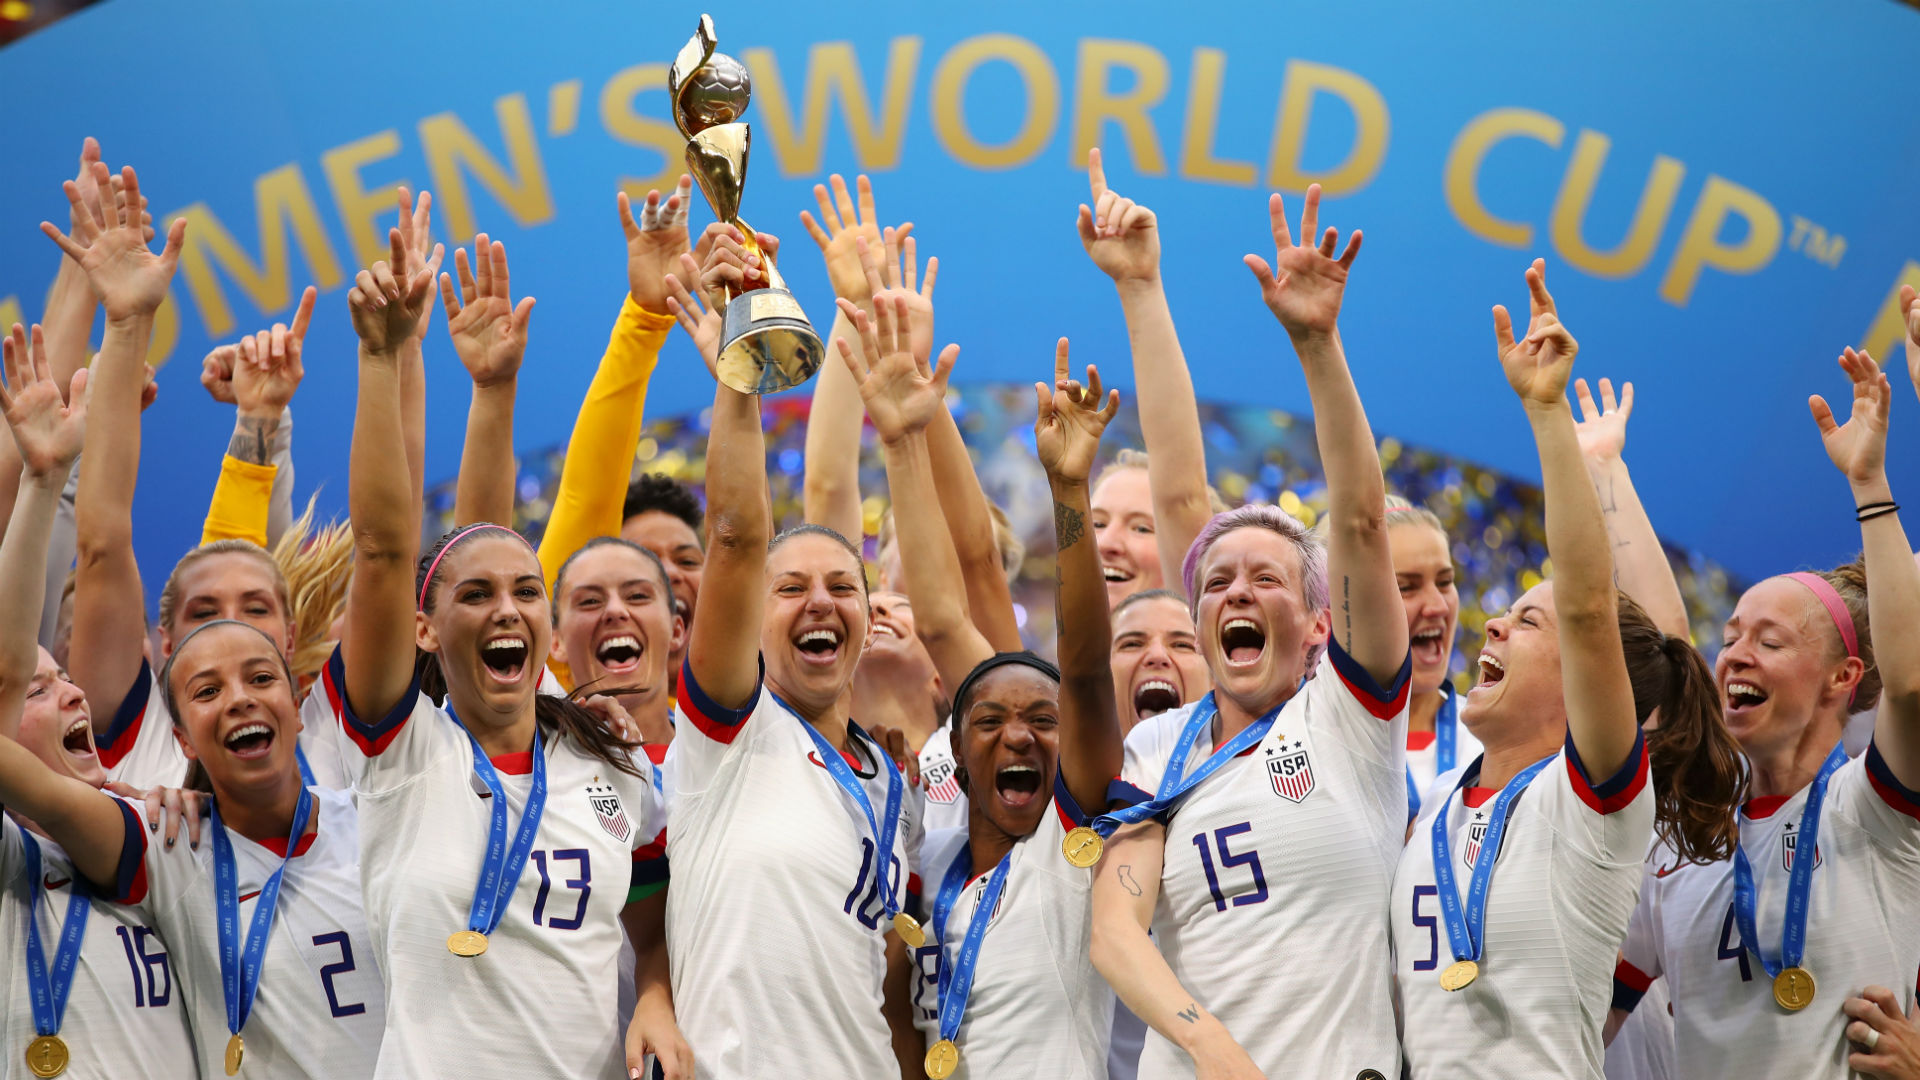 U.S. Senator: No equal pay for USWNT, no federal money for 2026 World Cup